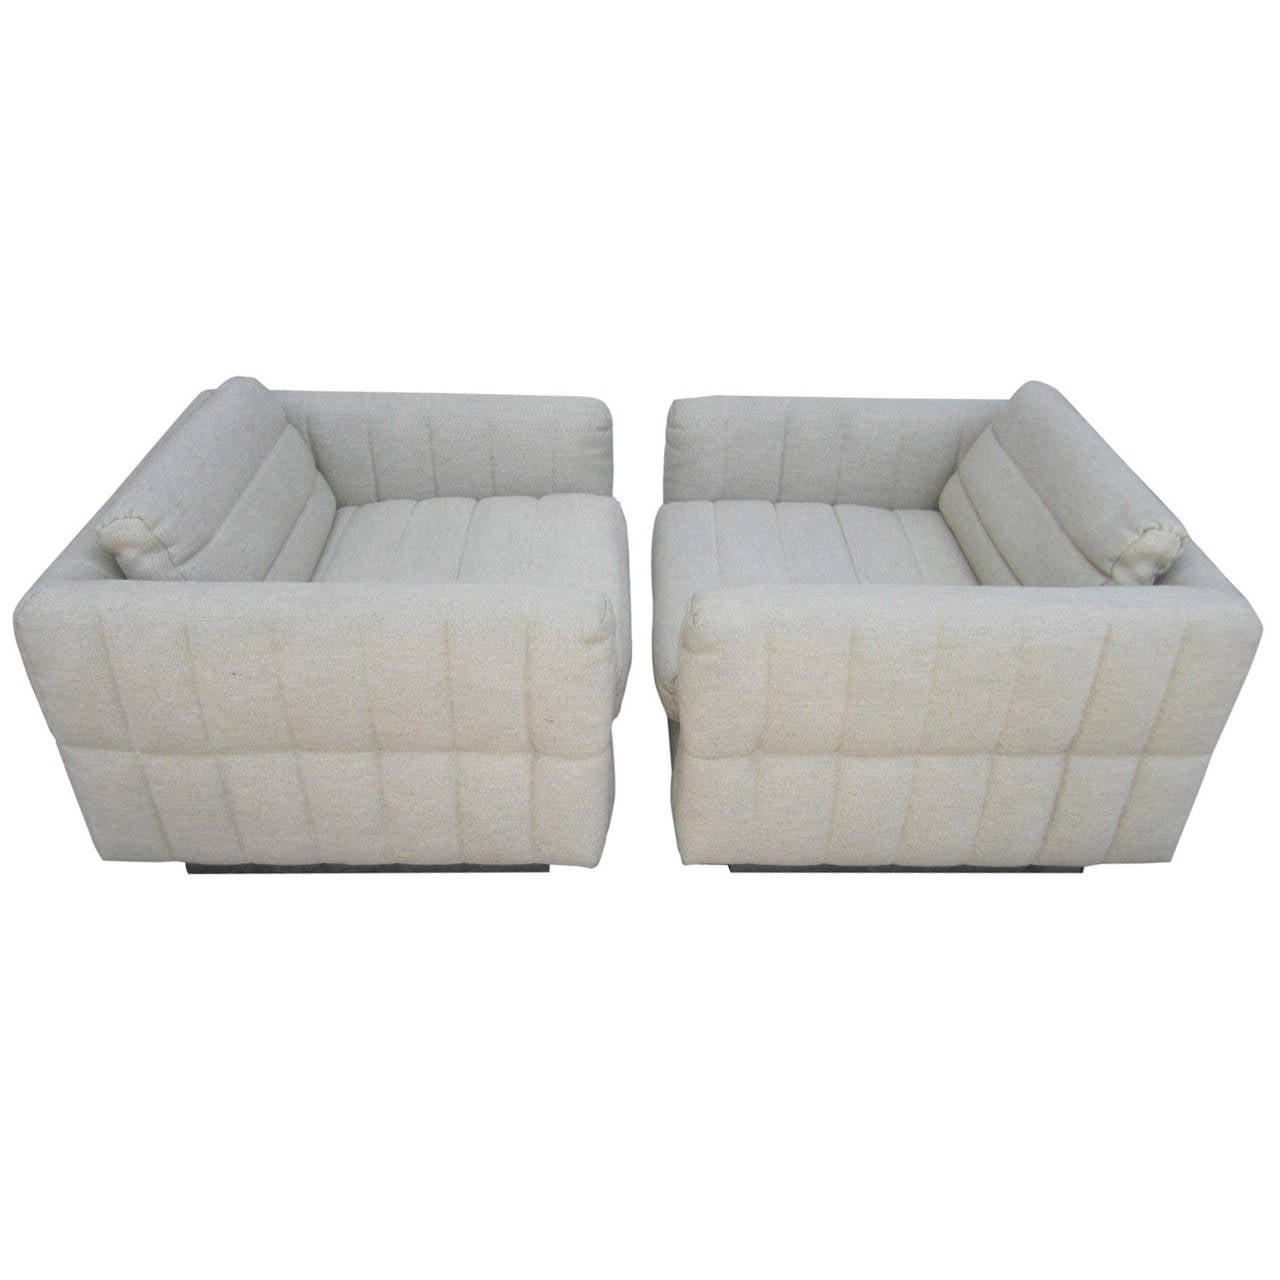 Cube Chairs Lovely Pair Of Channel Tufted Milo Baughman Cube Chairs Chrome Base Mid Century